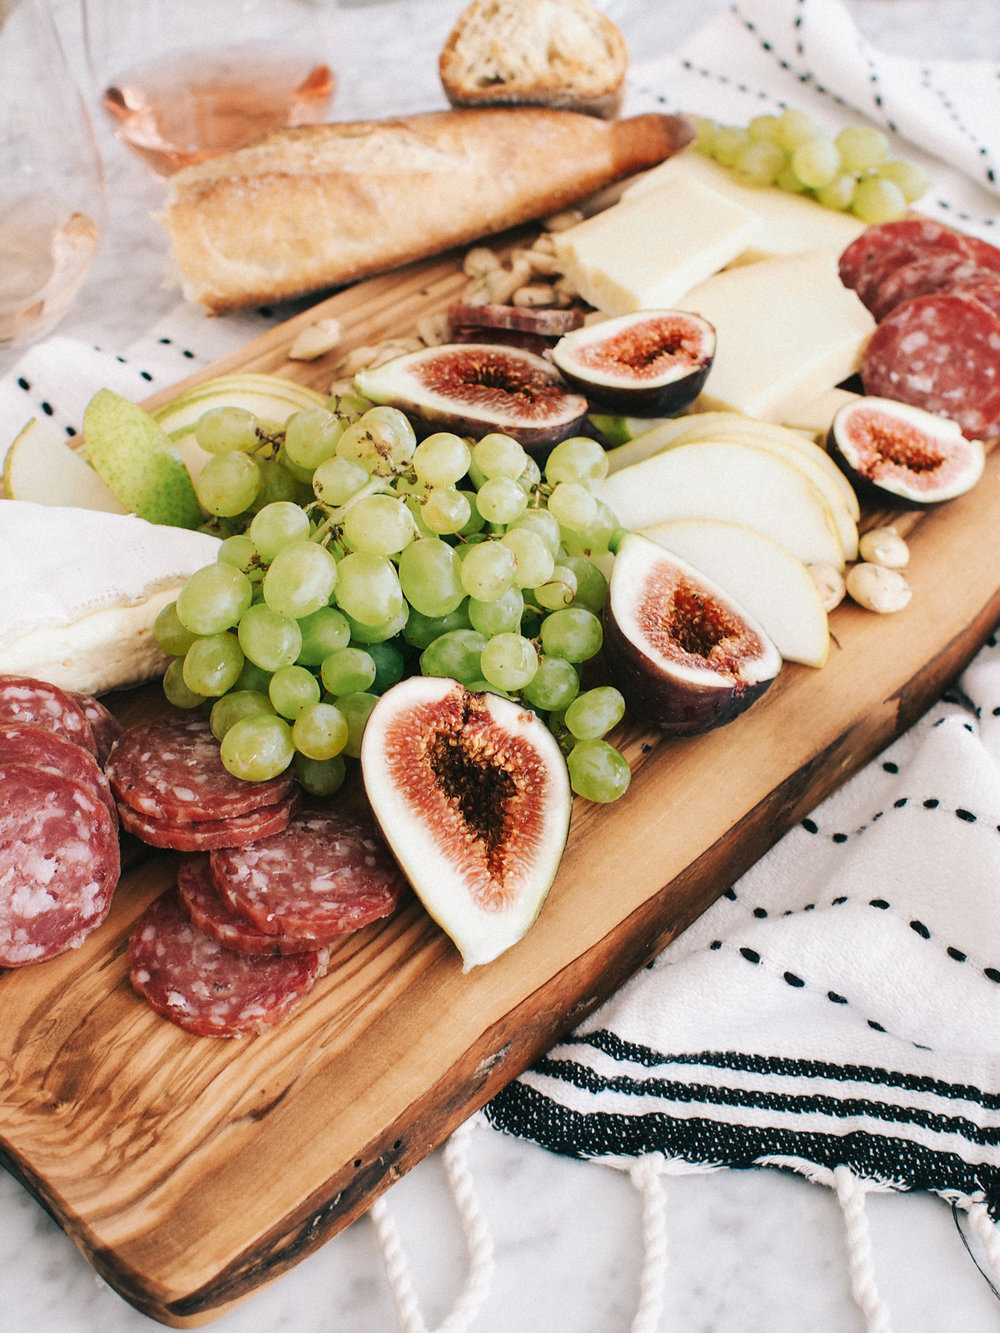 Sunday funday cheese plate at home | A Fabulous Fete